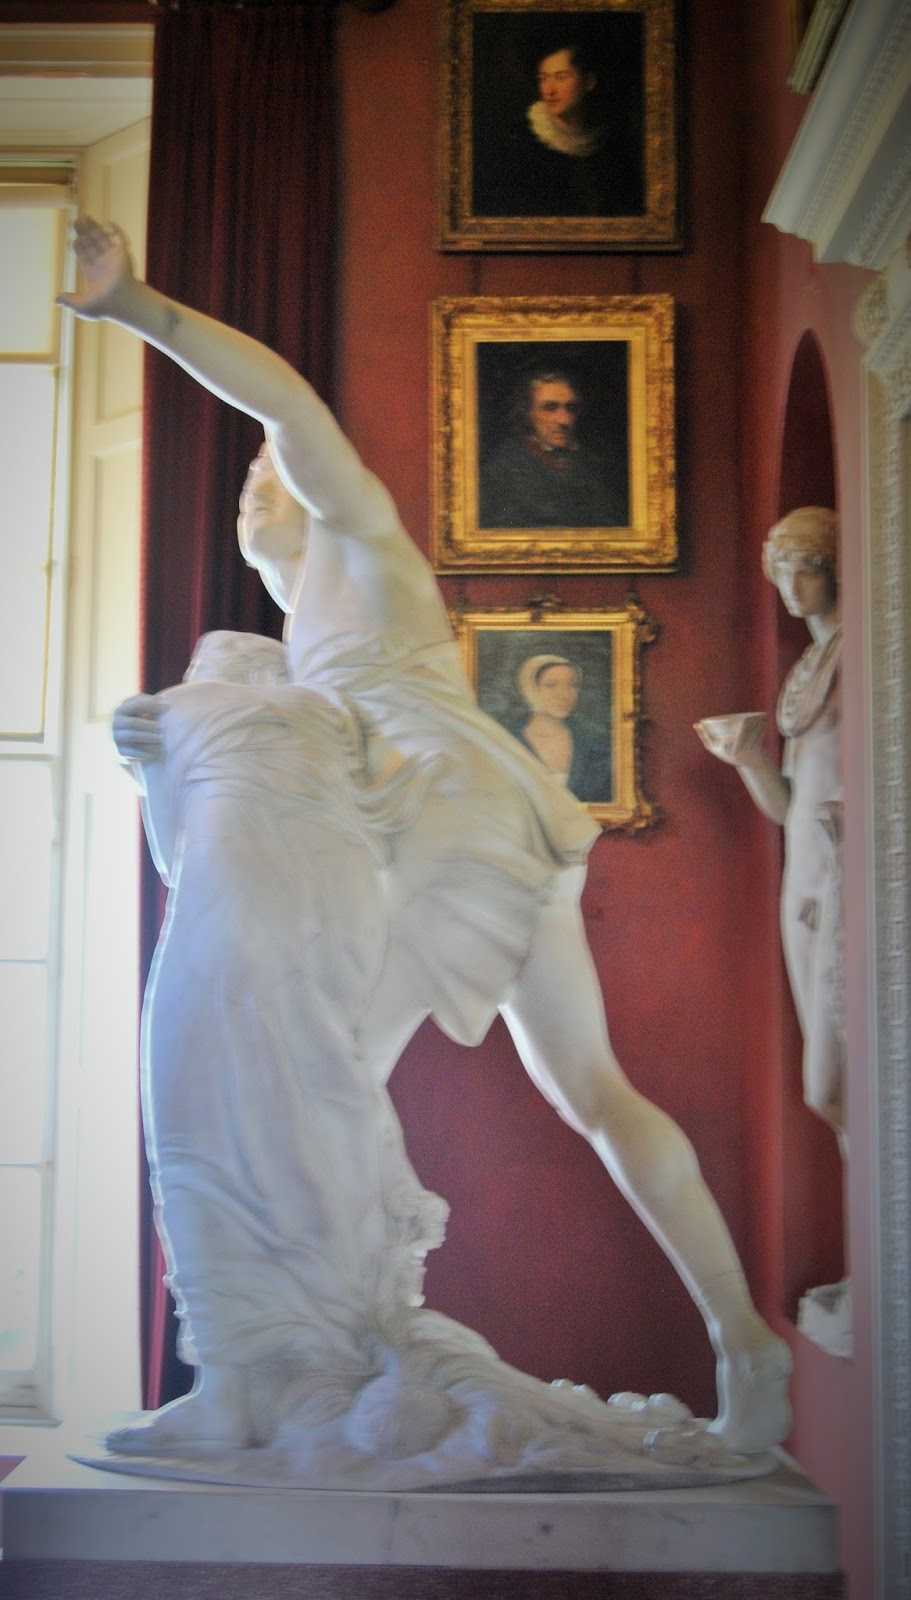 Sculptures and pictures in the North Gallery, Petworth House, photo by Modern Bric a Brac